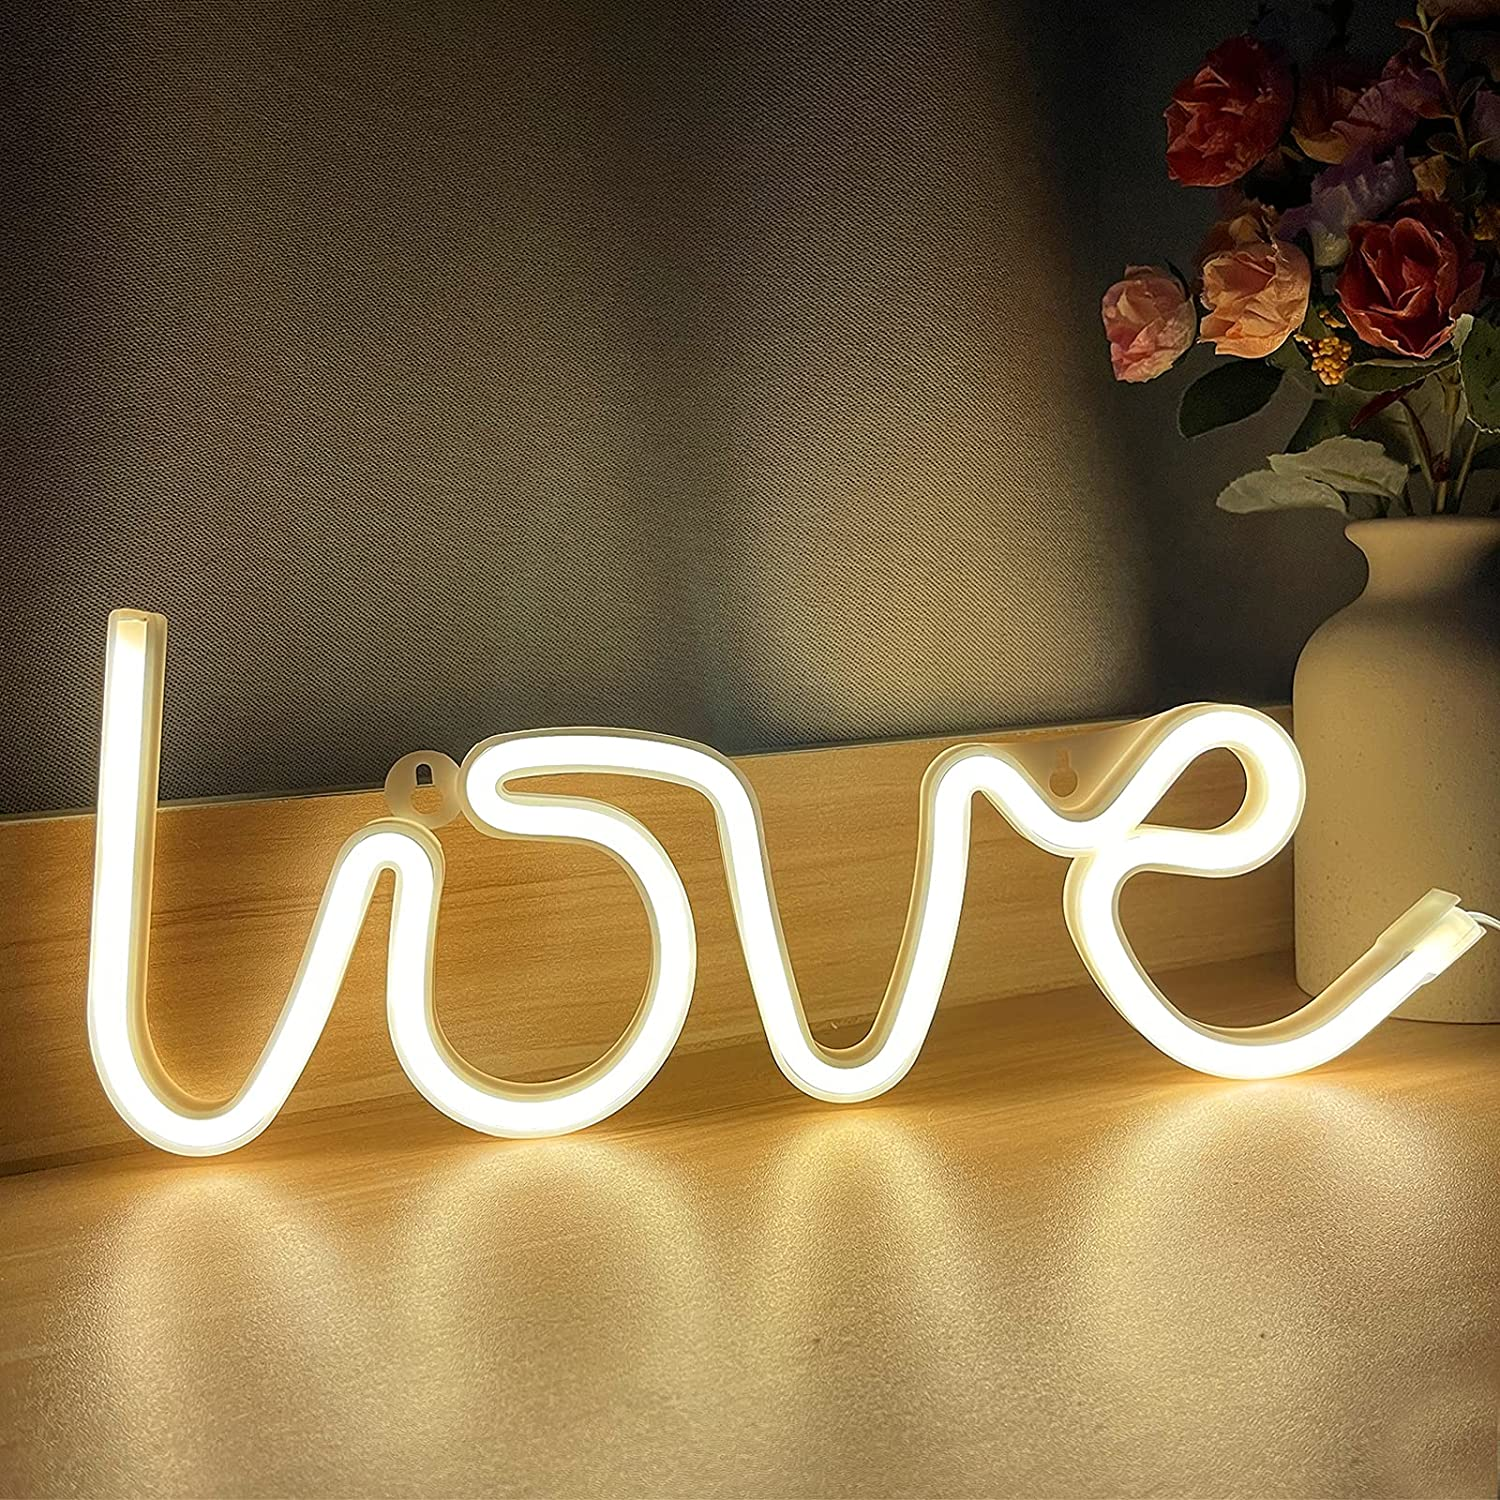 AMENON Love LED Neon Sign for Bedroom Wall Decor, USB or Battery Operated Neon Light up Sign for Home Decor Birthday Wedding Party Kids Living Room Home Indoor Decorations (Warm White)